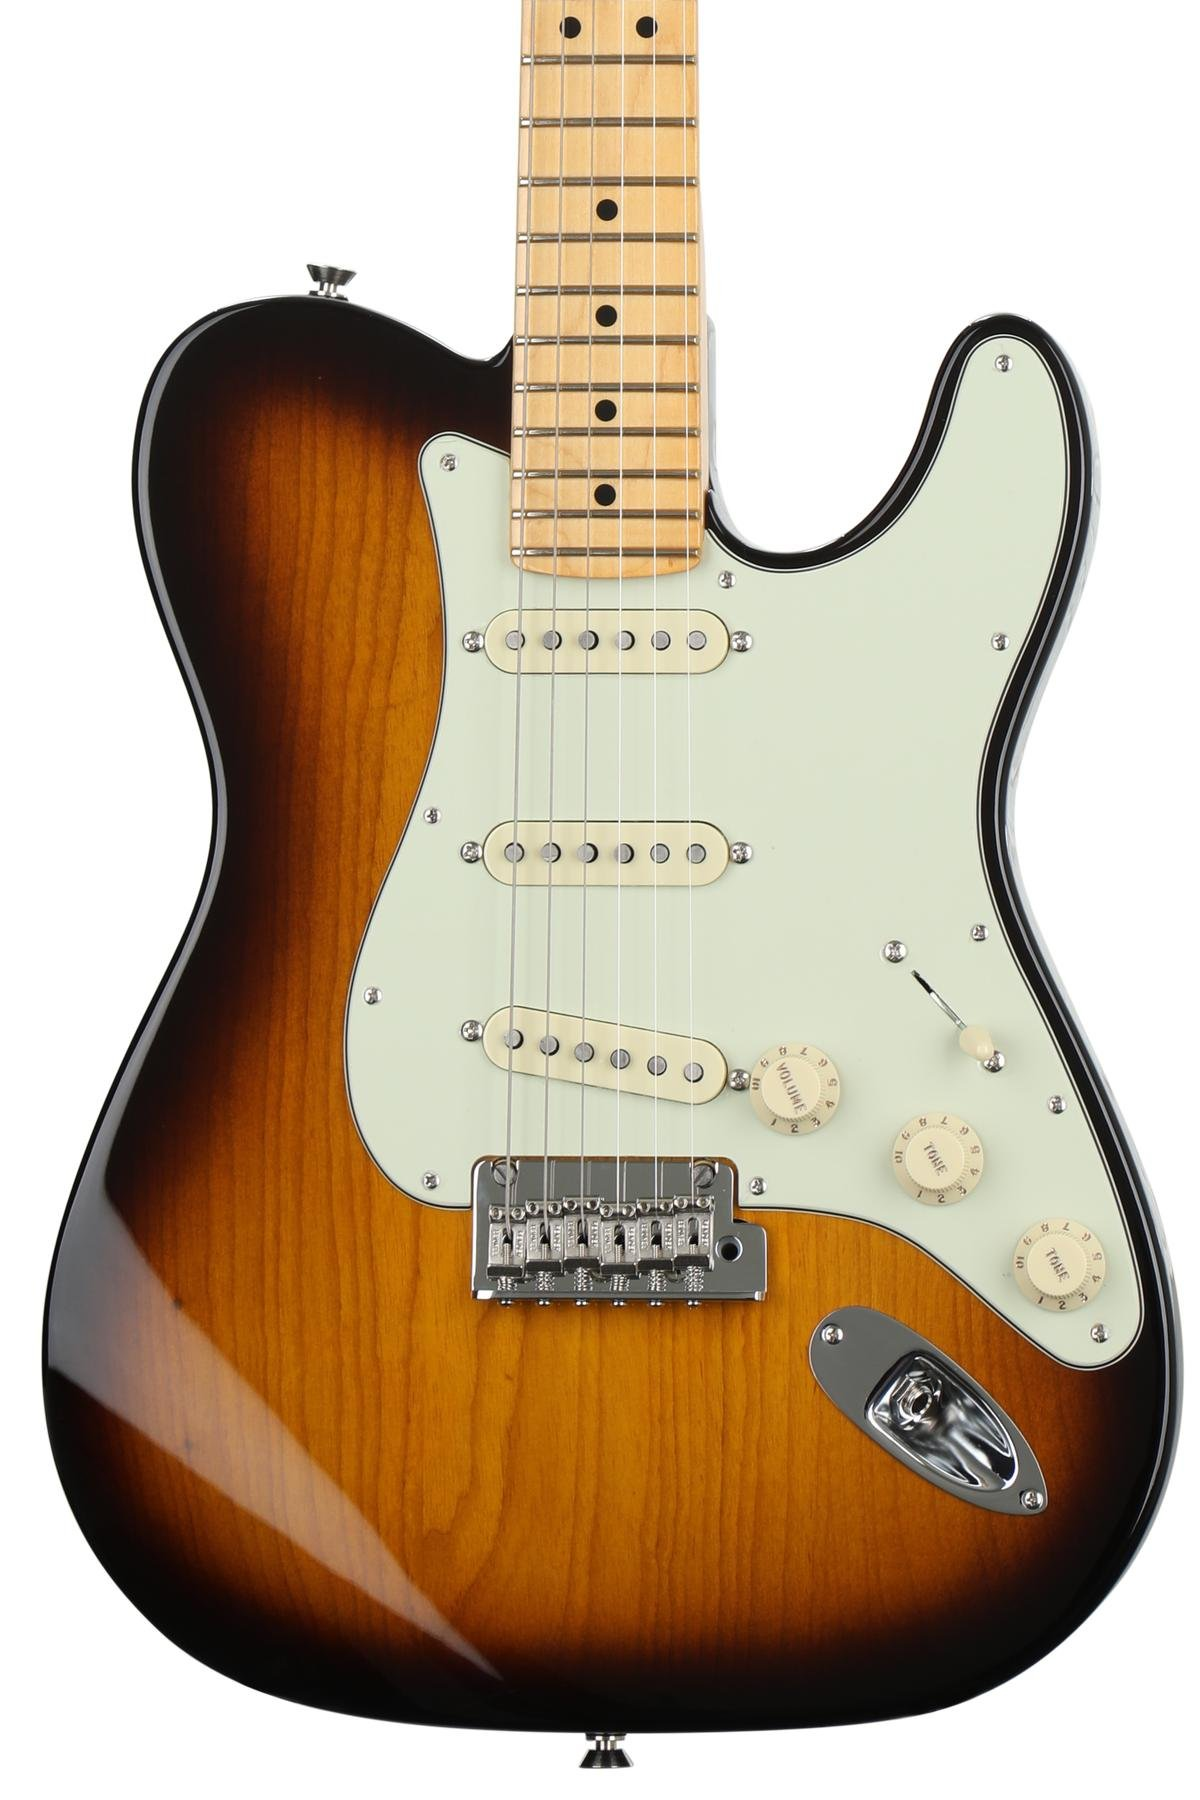 Telecaster Wiring Diagram Series Fender Limited Edition Parallel Universe Strat Tele Hybrid 2 Color Sunburst With Maple